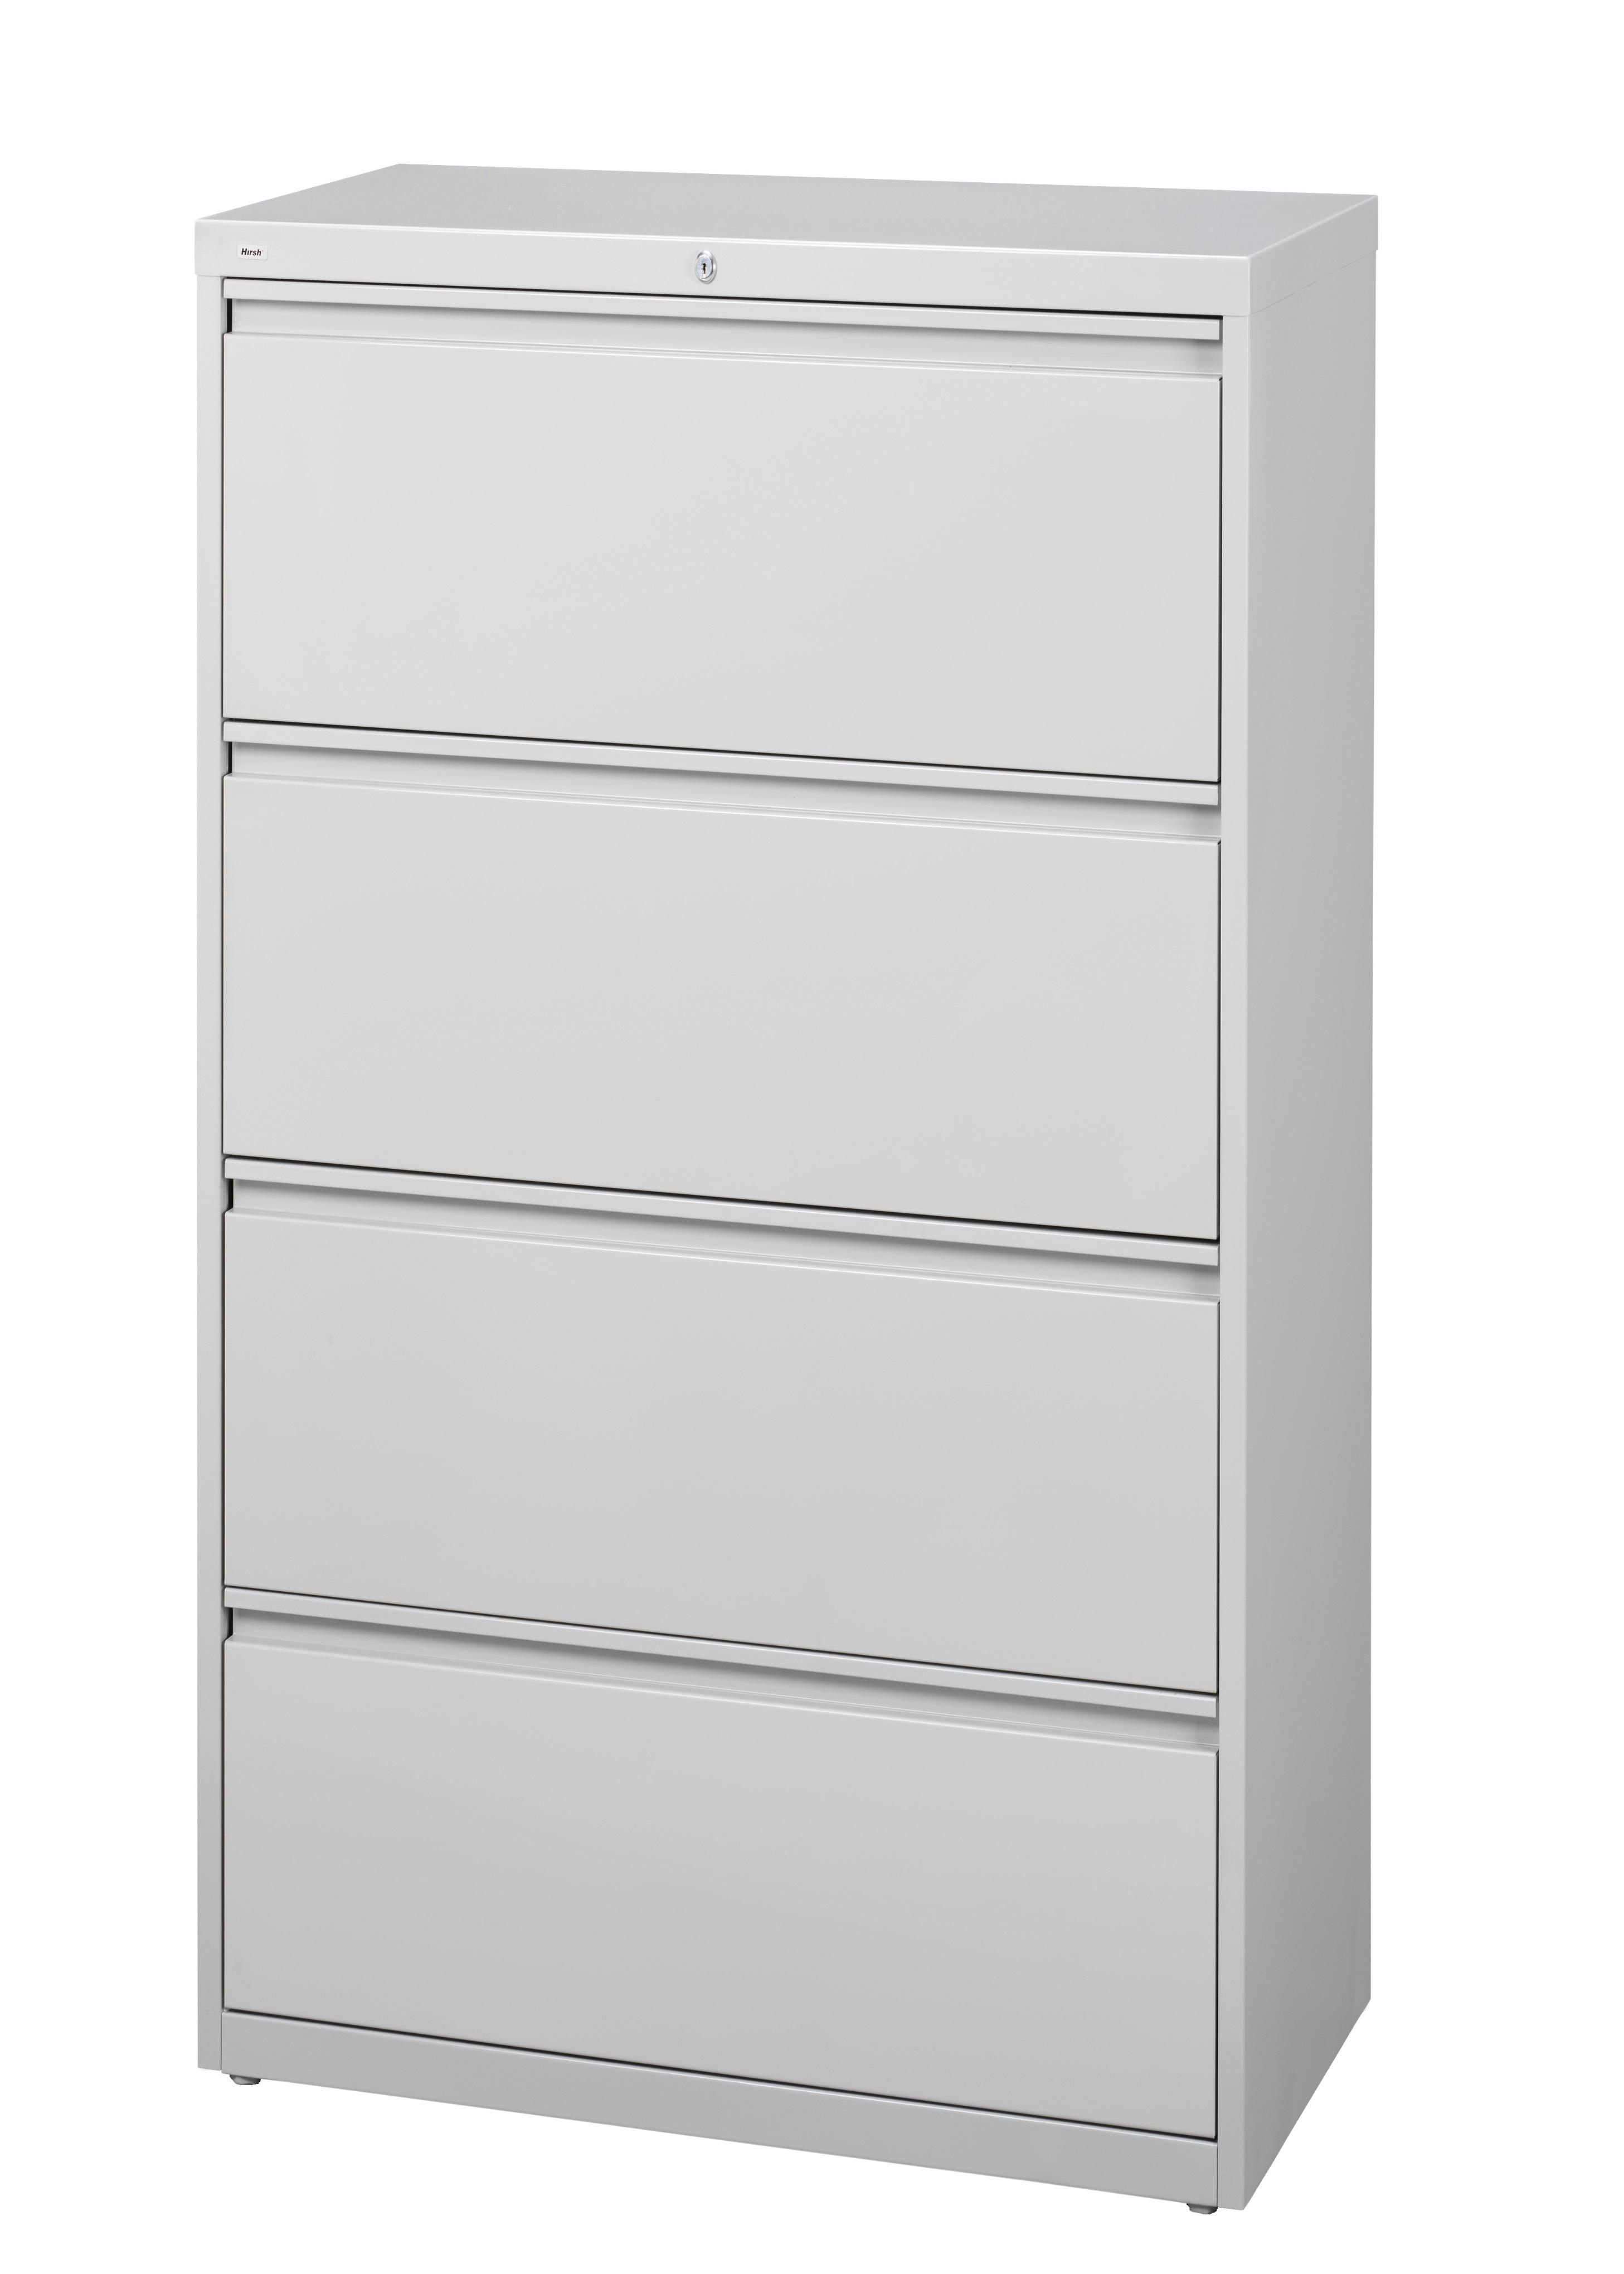 Hirsh HL10000 Series 30-inch Wide 4-drawer Commercial Lateral File Cabinet